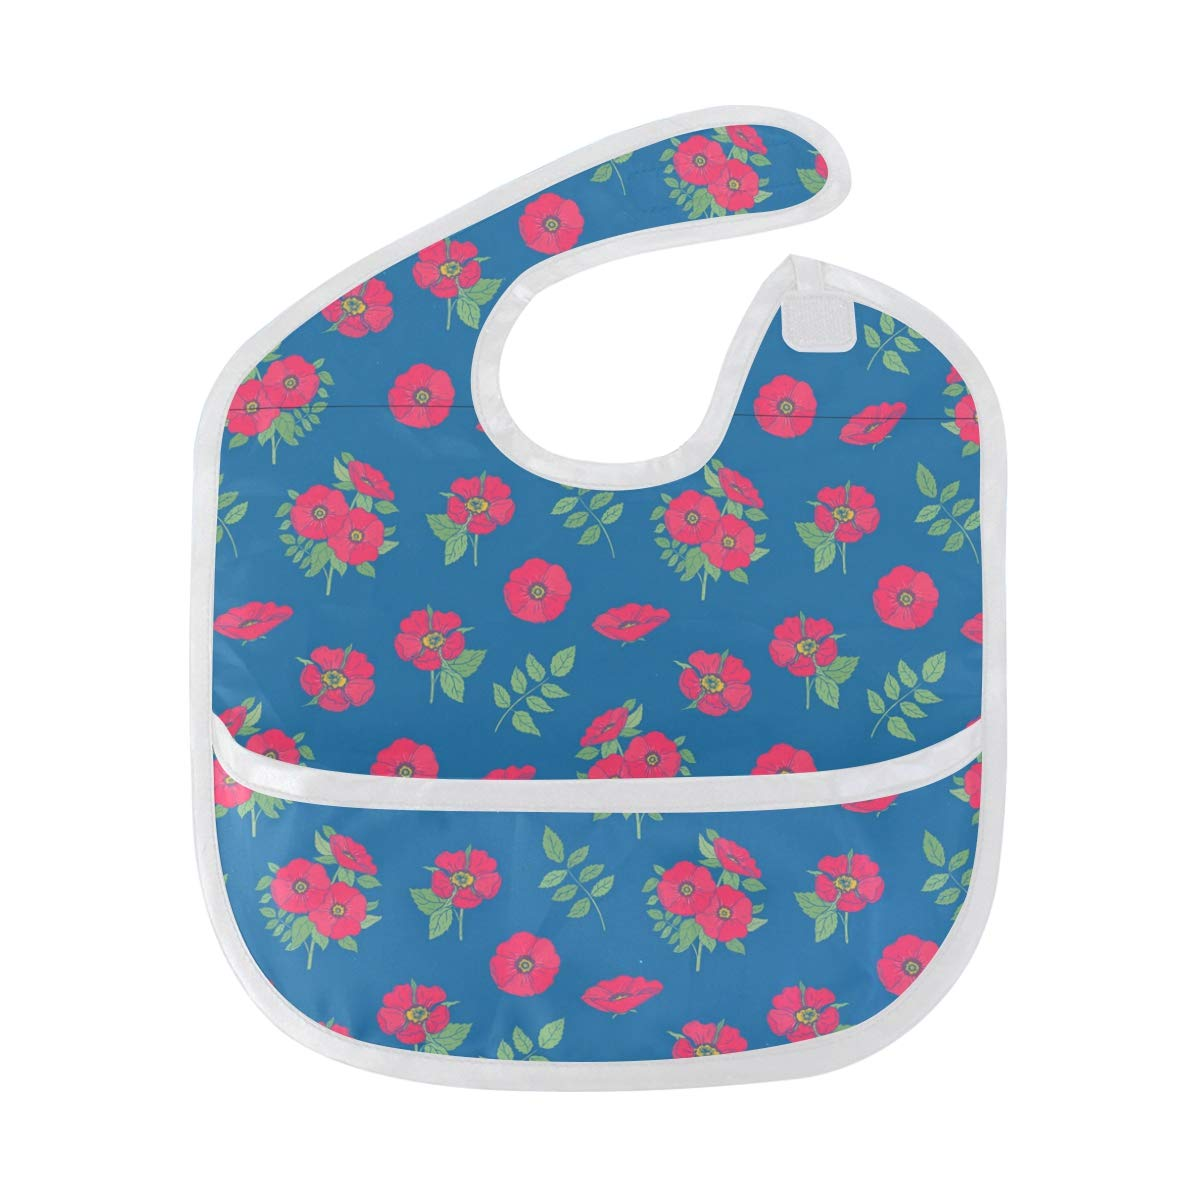 Baby Pink Dog Rose Flowers Bib, Waterproof, Washable, Stain and Odor Resistant, 6-24 Months, Unisex